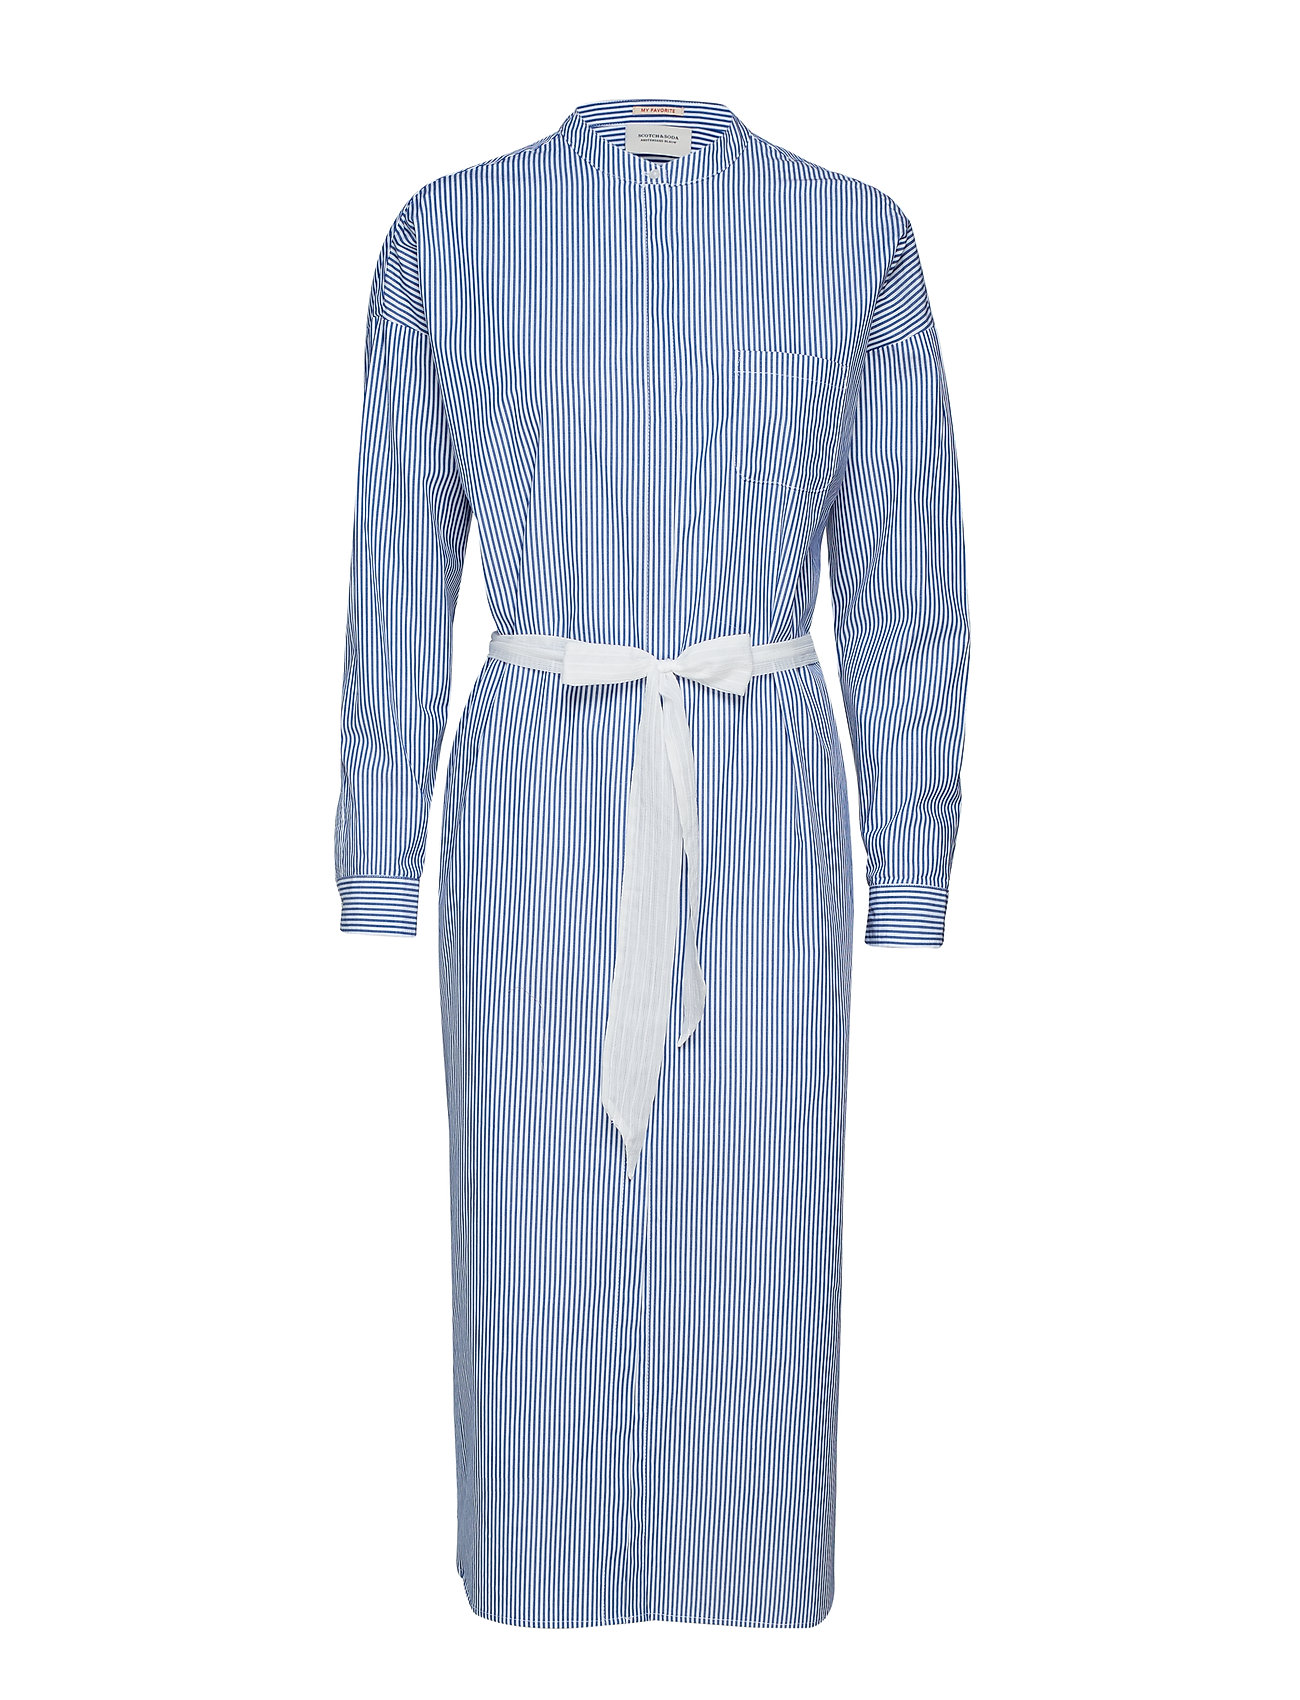 Scotch & Soda Longer length shirt dress - COMBO D